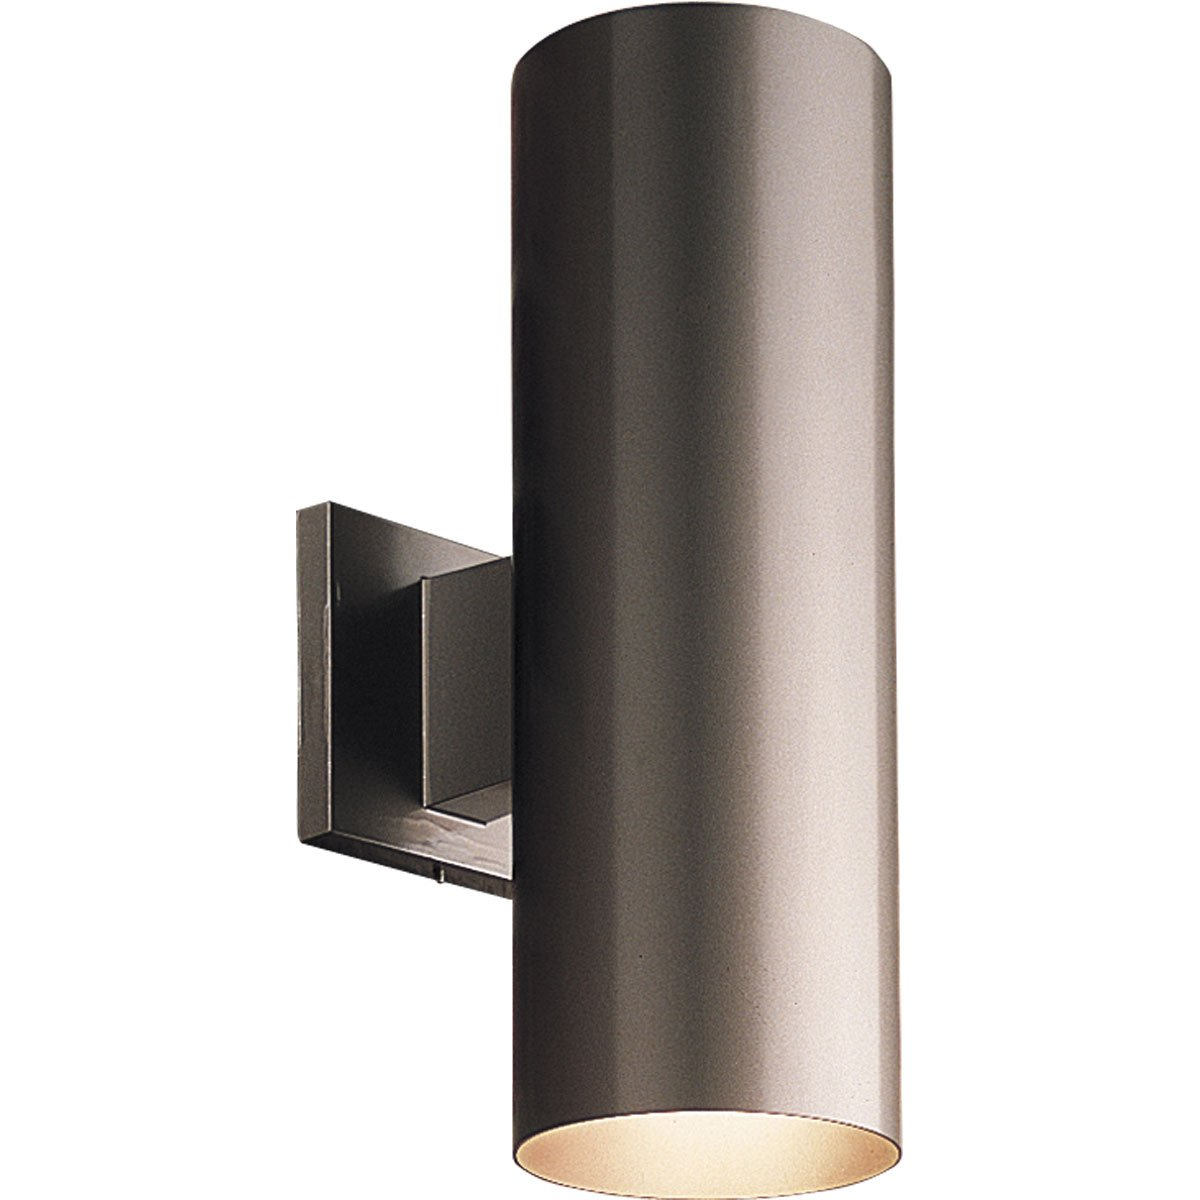 Progress Lighting 94567520 P5675-20 5'' Up/Down Cylinder with Heavy Duty Aluminum Construction & Die Cast Wall Bracket Powder Coated Finish Ul Listed For Wet Locations, 5'' Width x 14'' Height, Antique Bronze by Progress Lighting